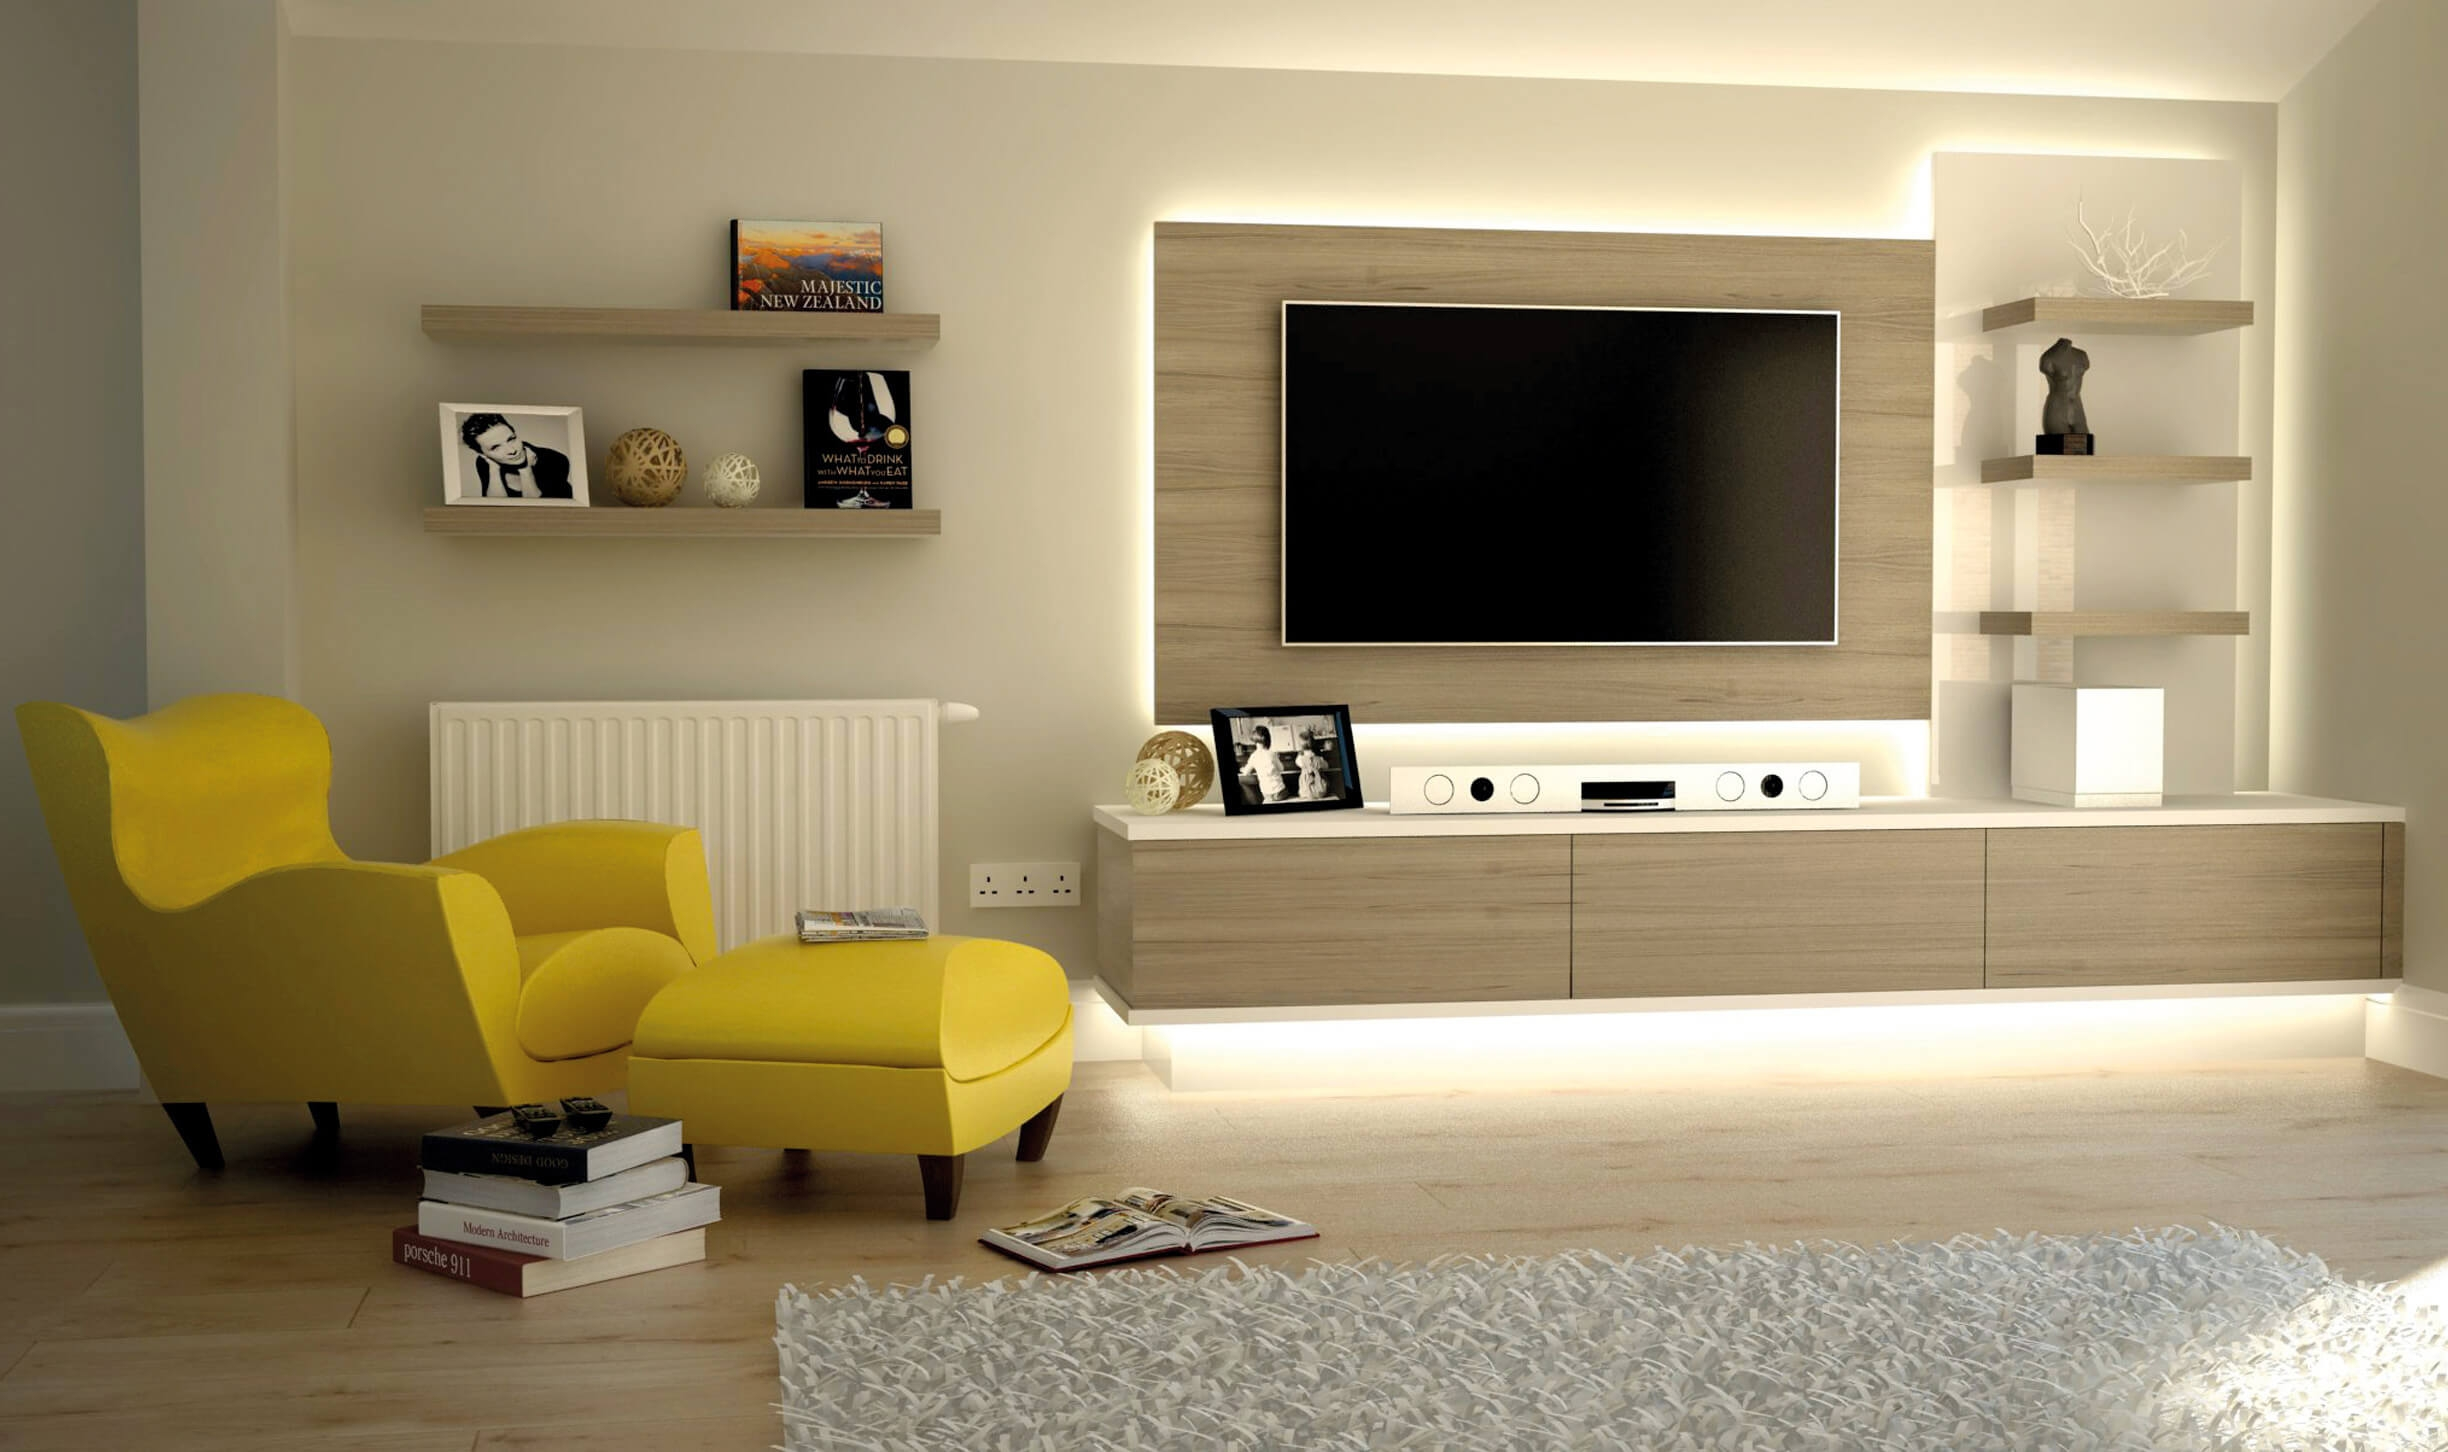 Bespoke Tv Cabinets Bookcases And Storage Units For Over 50 Intended For Bespoke Tv Cabinets (Image 4 of 15)